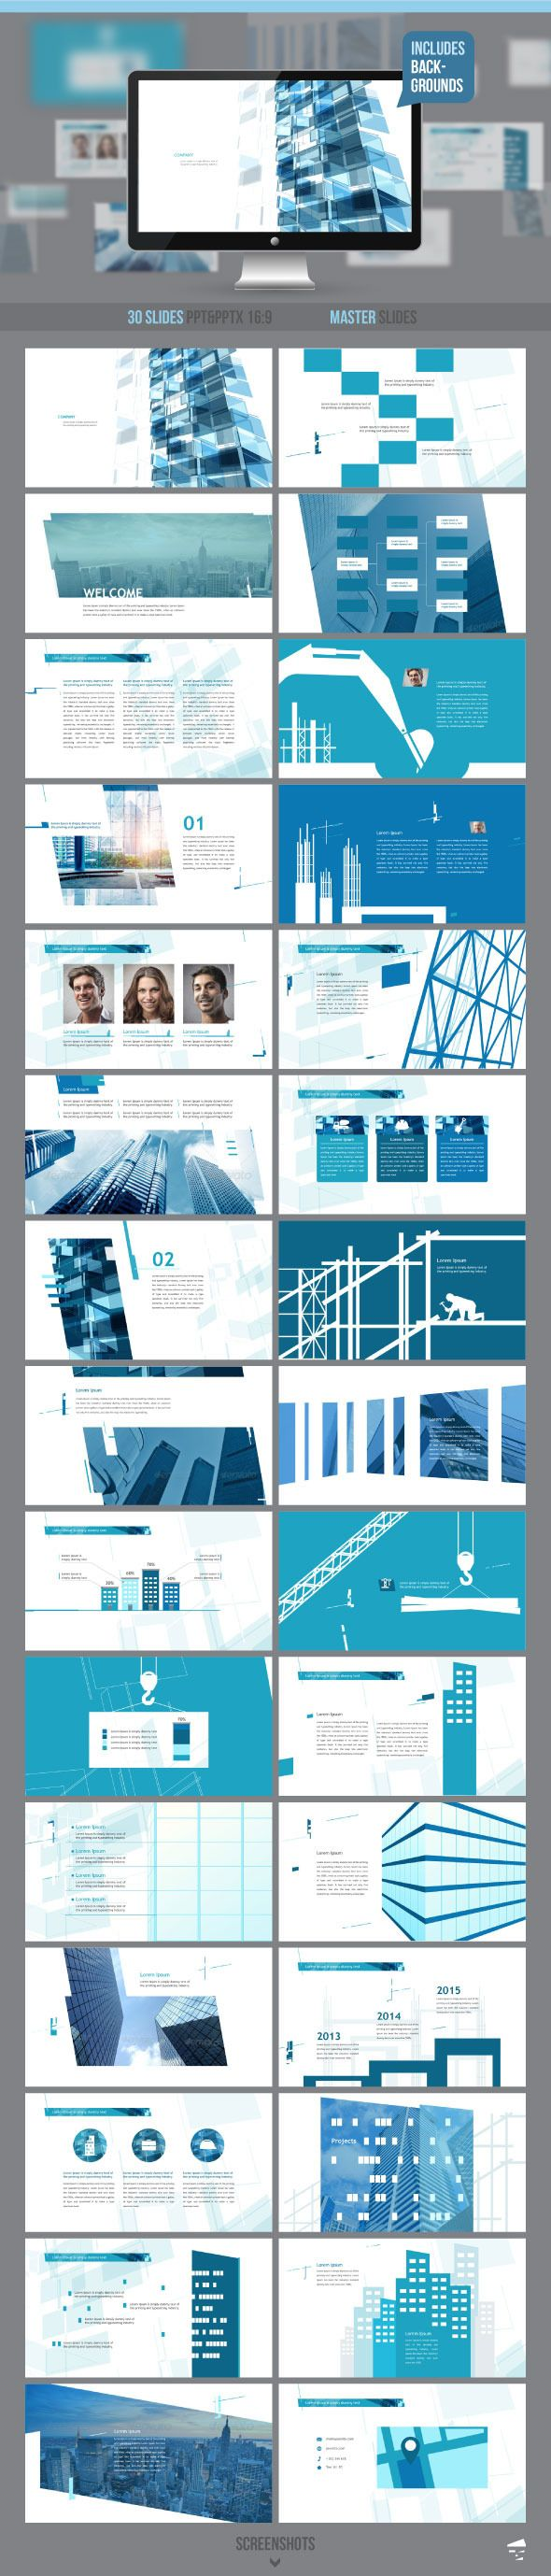 Construction professional presentation - Business PowerPoint Templates                                                                                                                                                                                 Mais